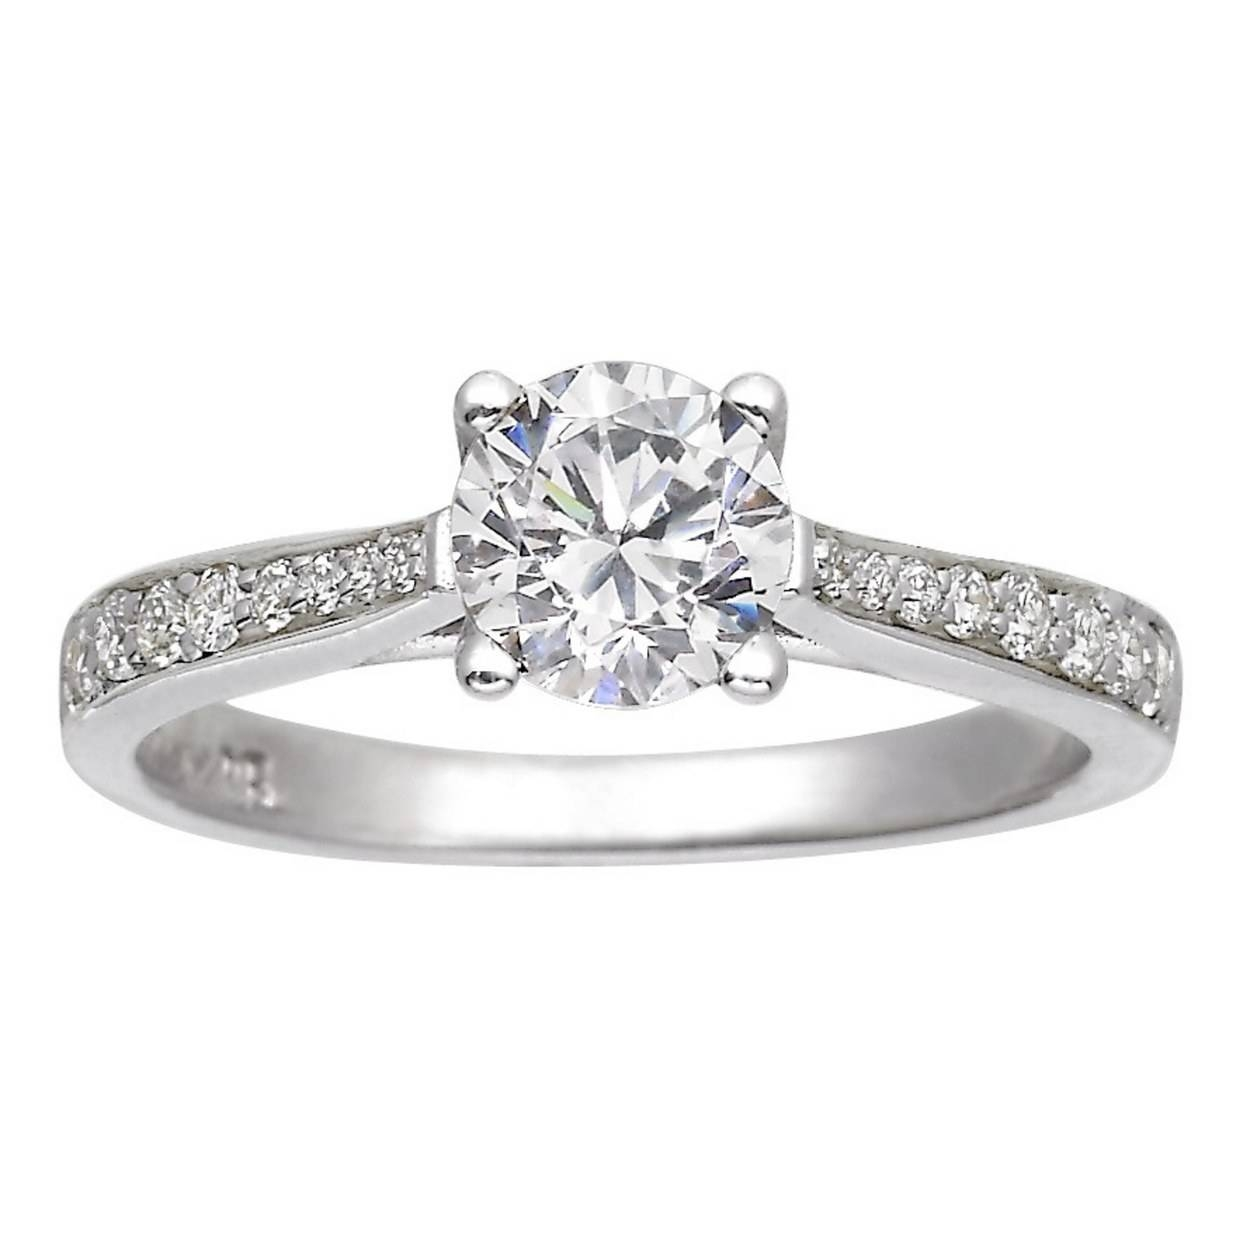 62 Diamond Engagement Rings Under $5,000 | Glamour In Diamonds Engagement Rings (View 12 of 15)